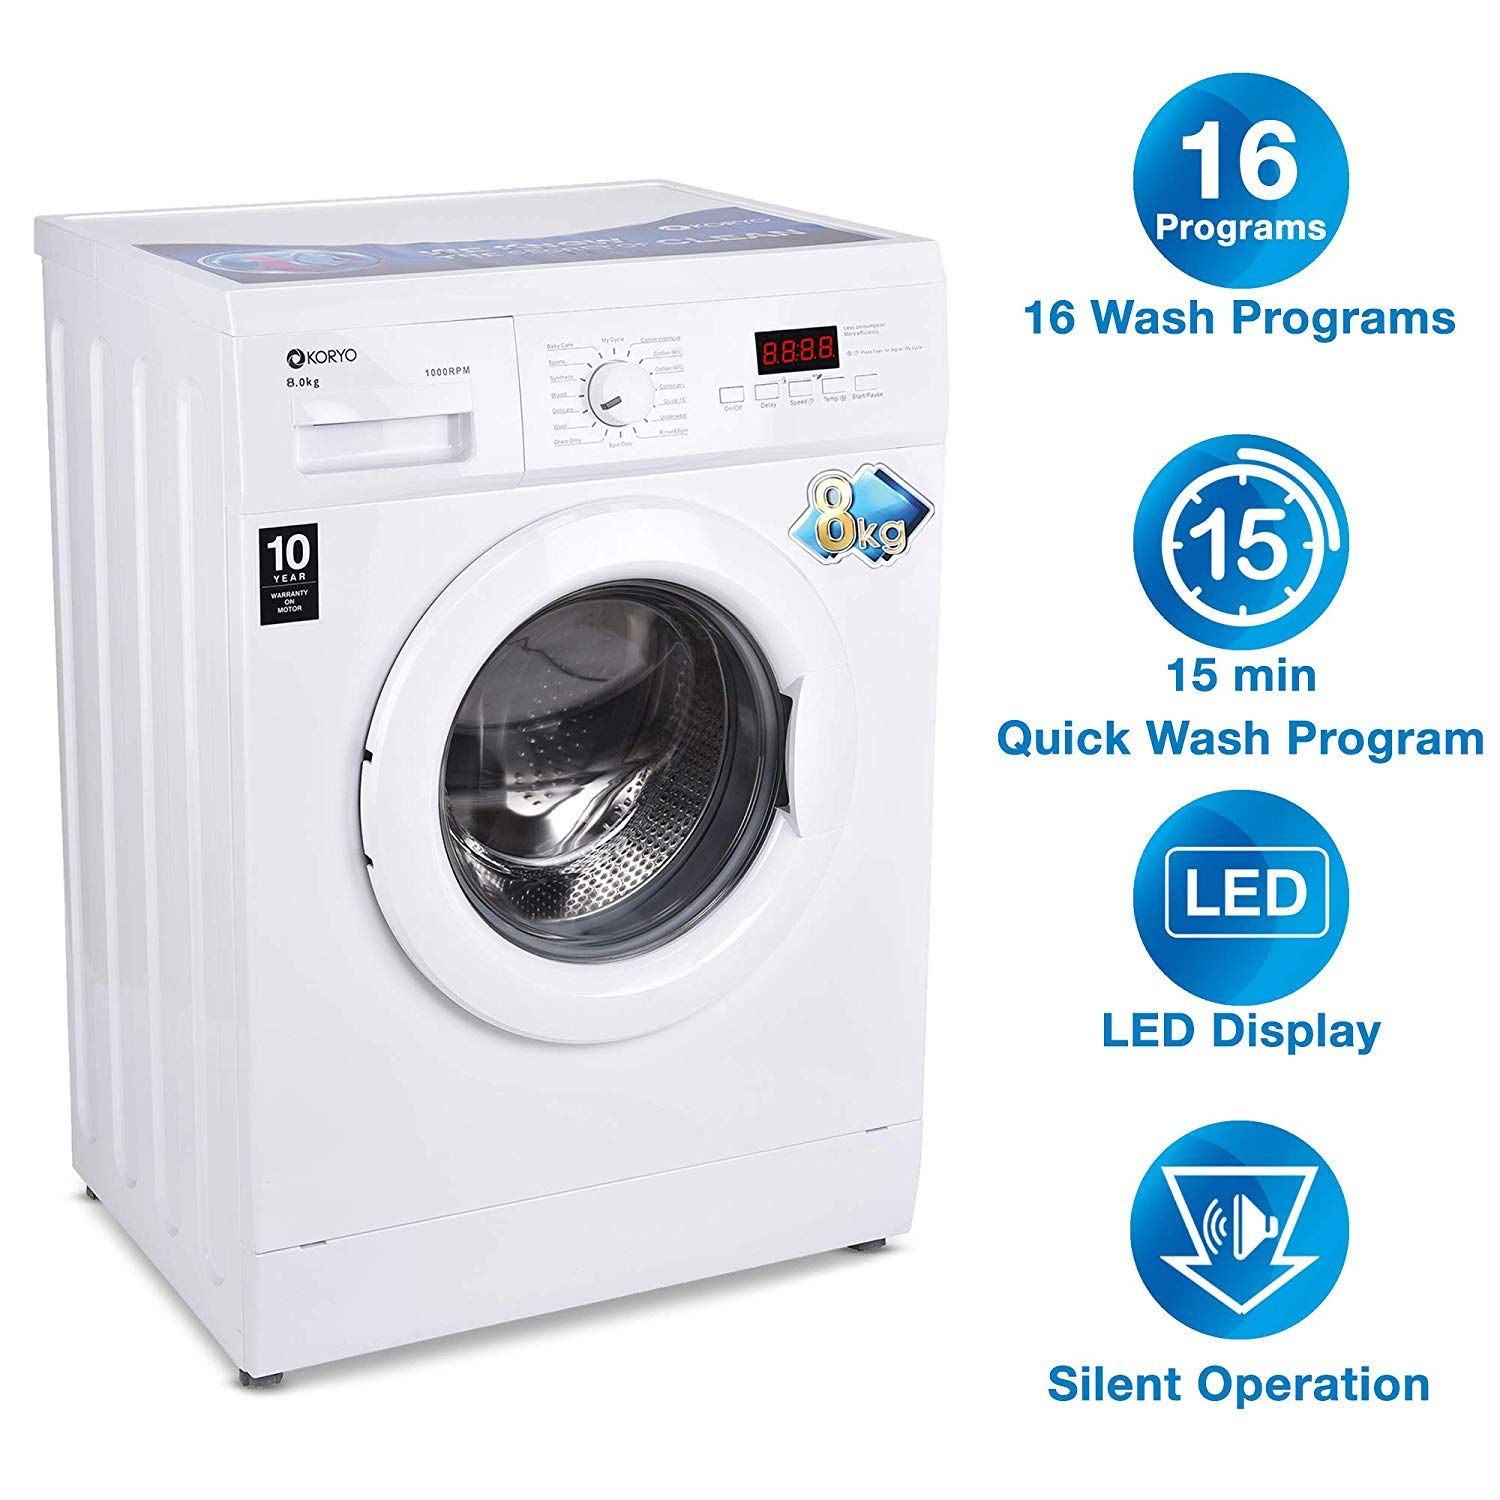 5 Best Washing Machine Under 20000 Rupees In India Market Automatic Washing Machine Washing Machines Best Fully Automatic Washing Machine